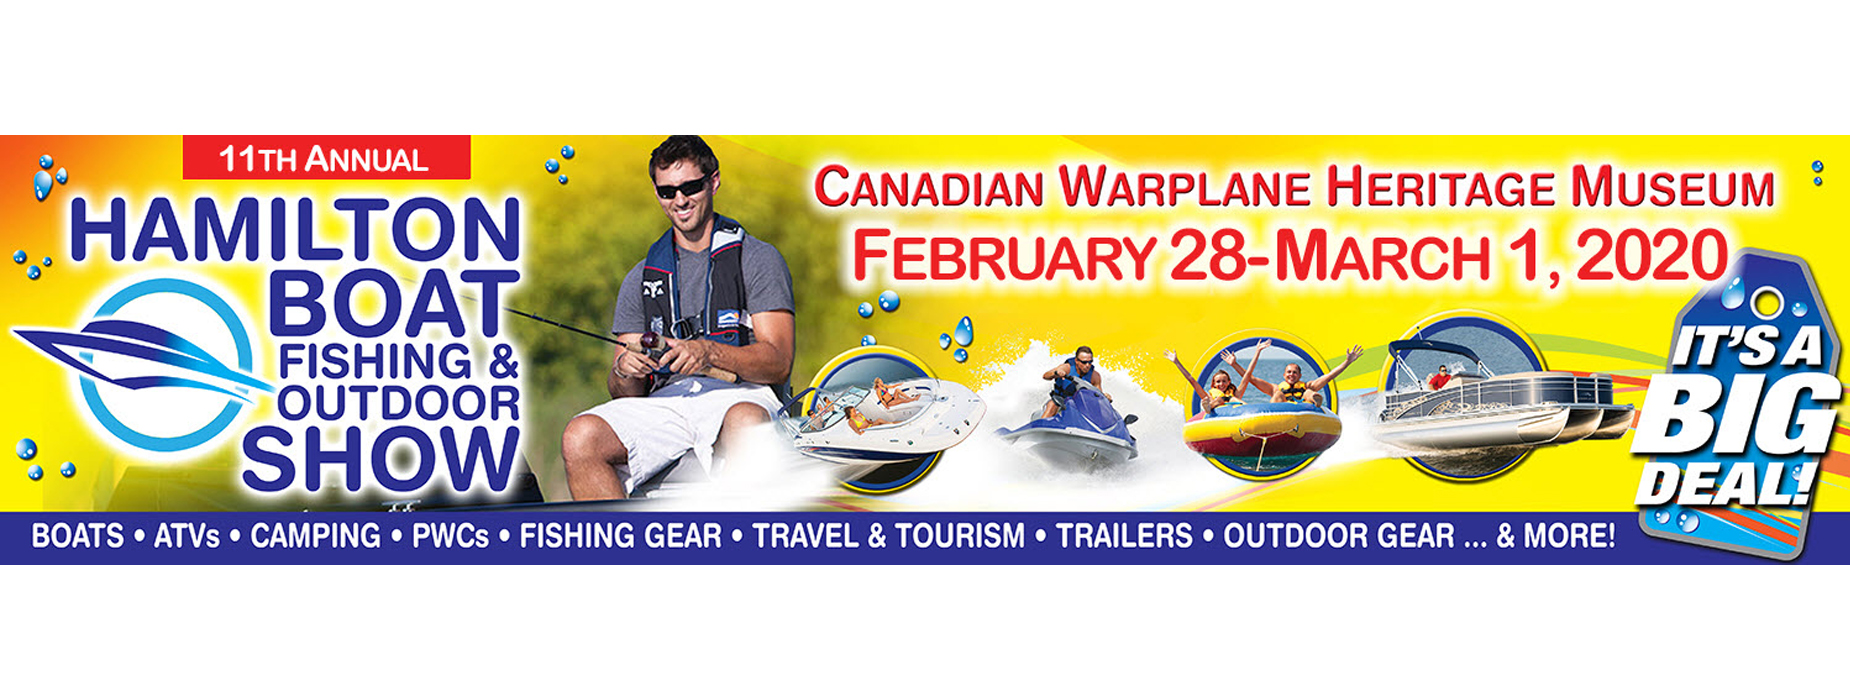 Banner Image for the Hamilton Boat Fishing & Outdoor Show event